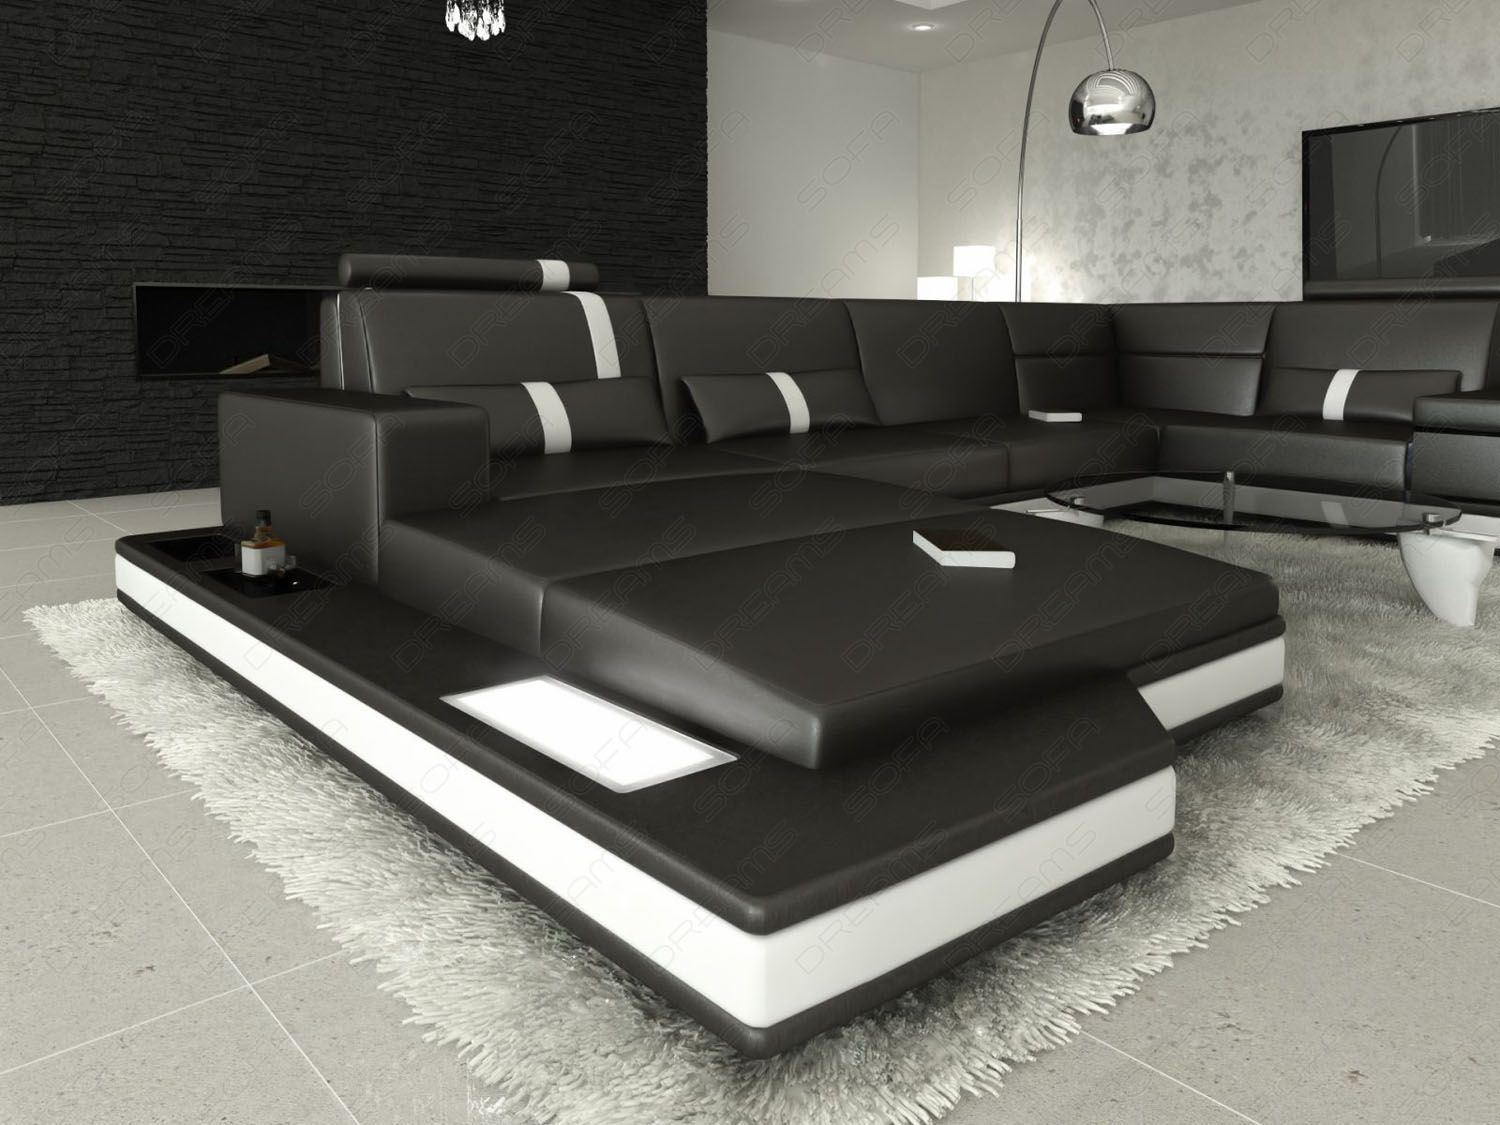 sofas ledersofa ledersofa wohnlandschaft messana schwarz weiss sofas wohnlandschaften. Black Bedroom Furniture Sets. Home Design Ideas